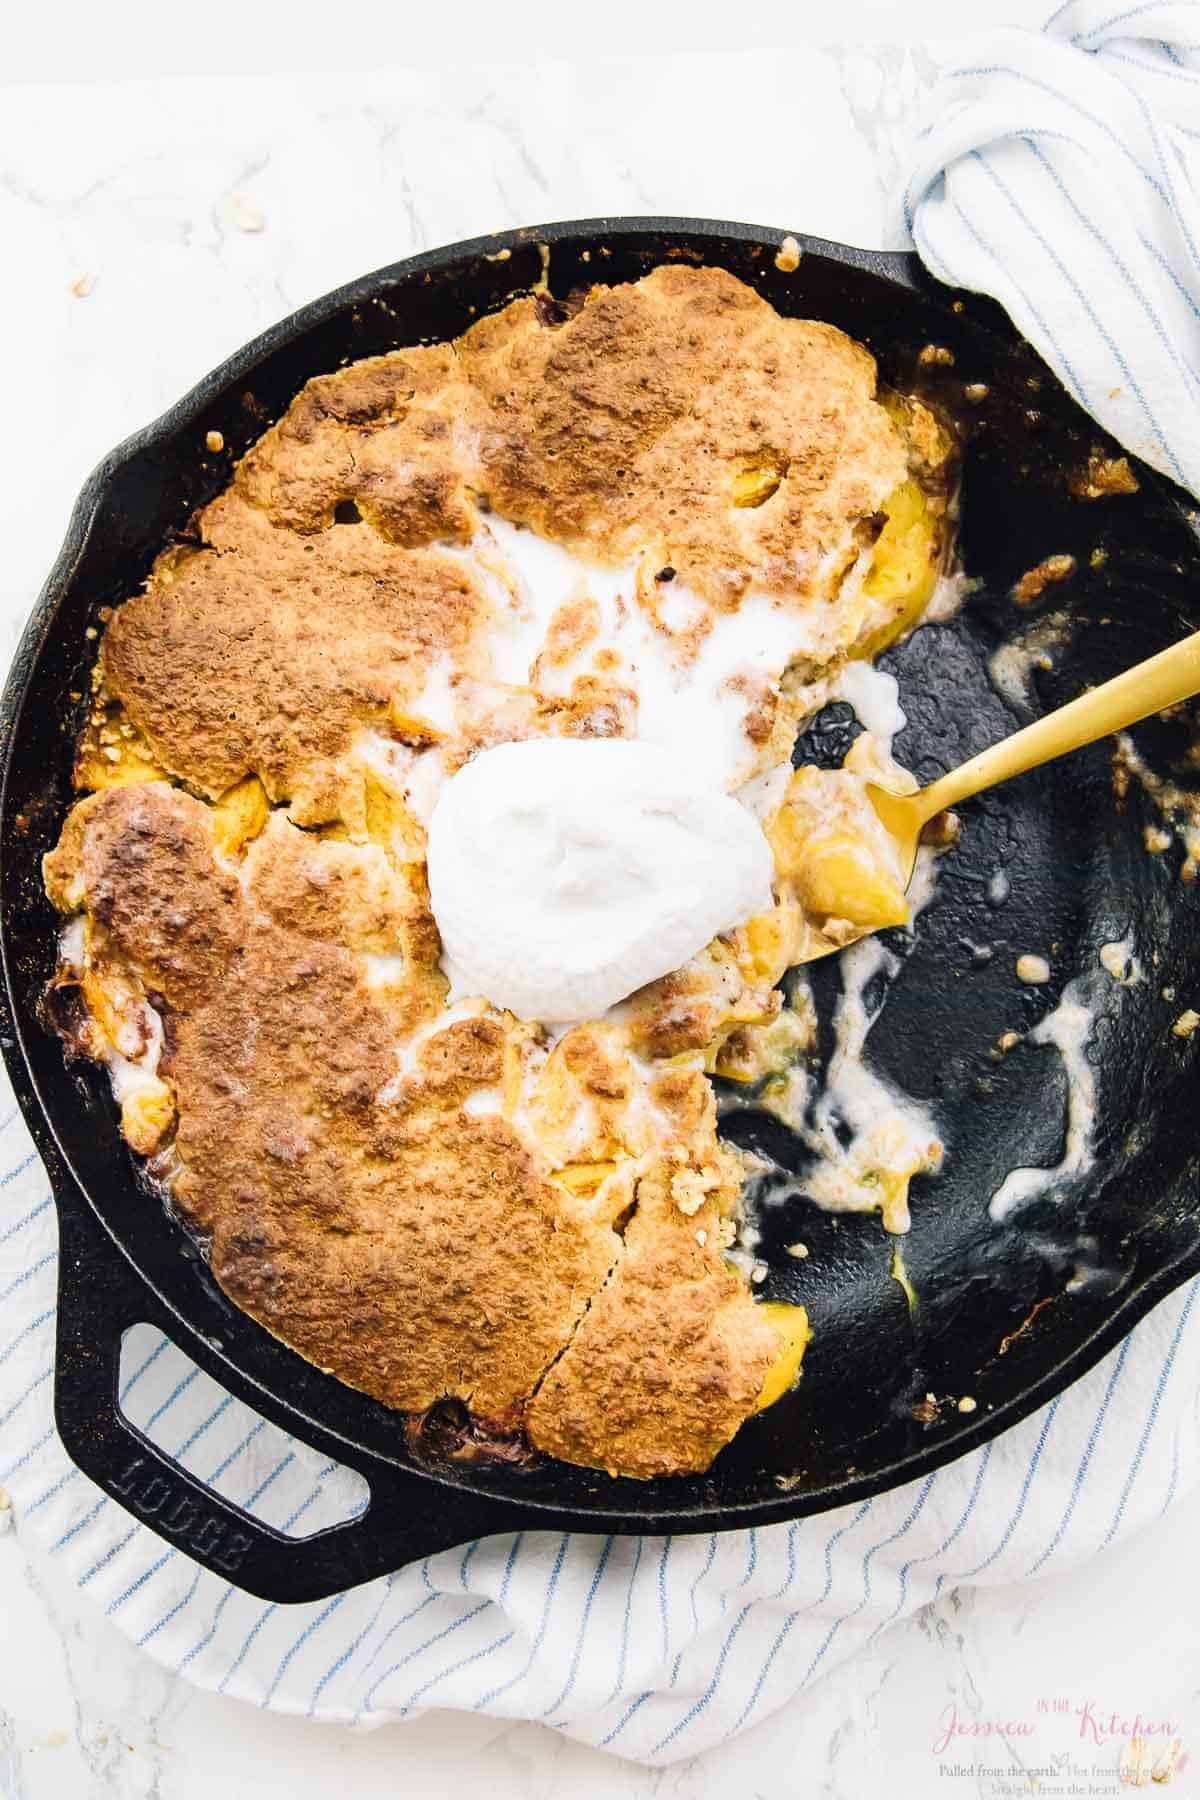 Top down shot of peach cobbler in a skillet with cream on top.